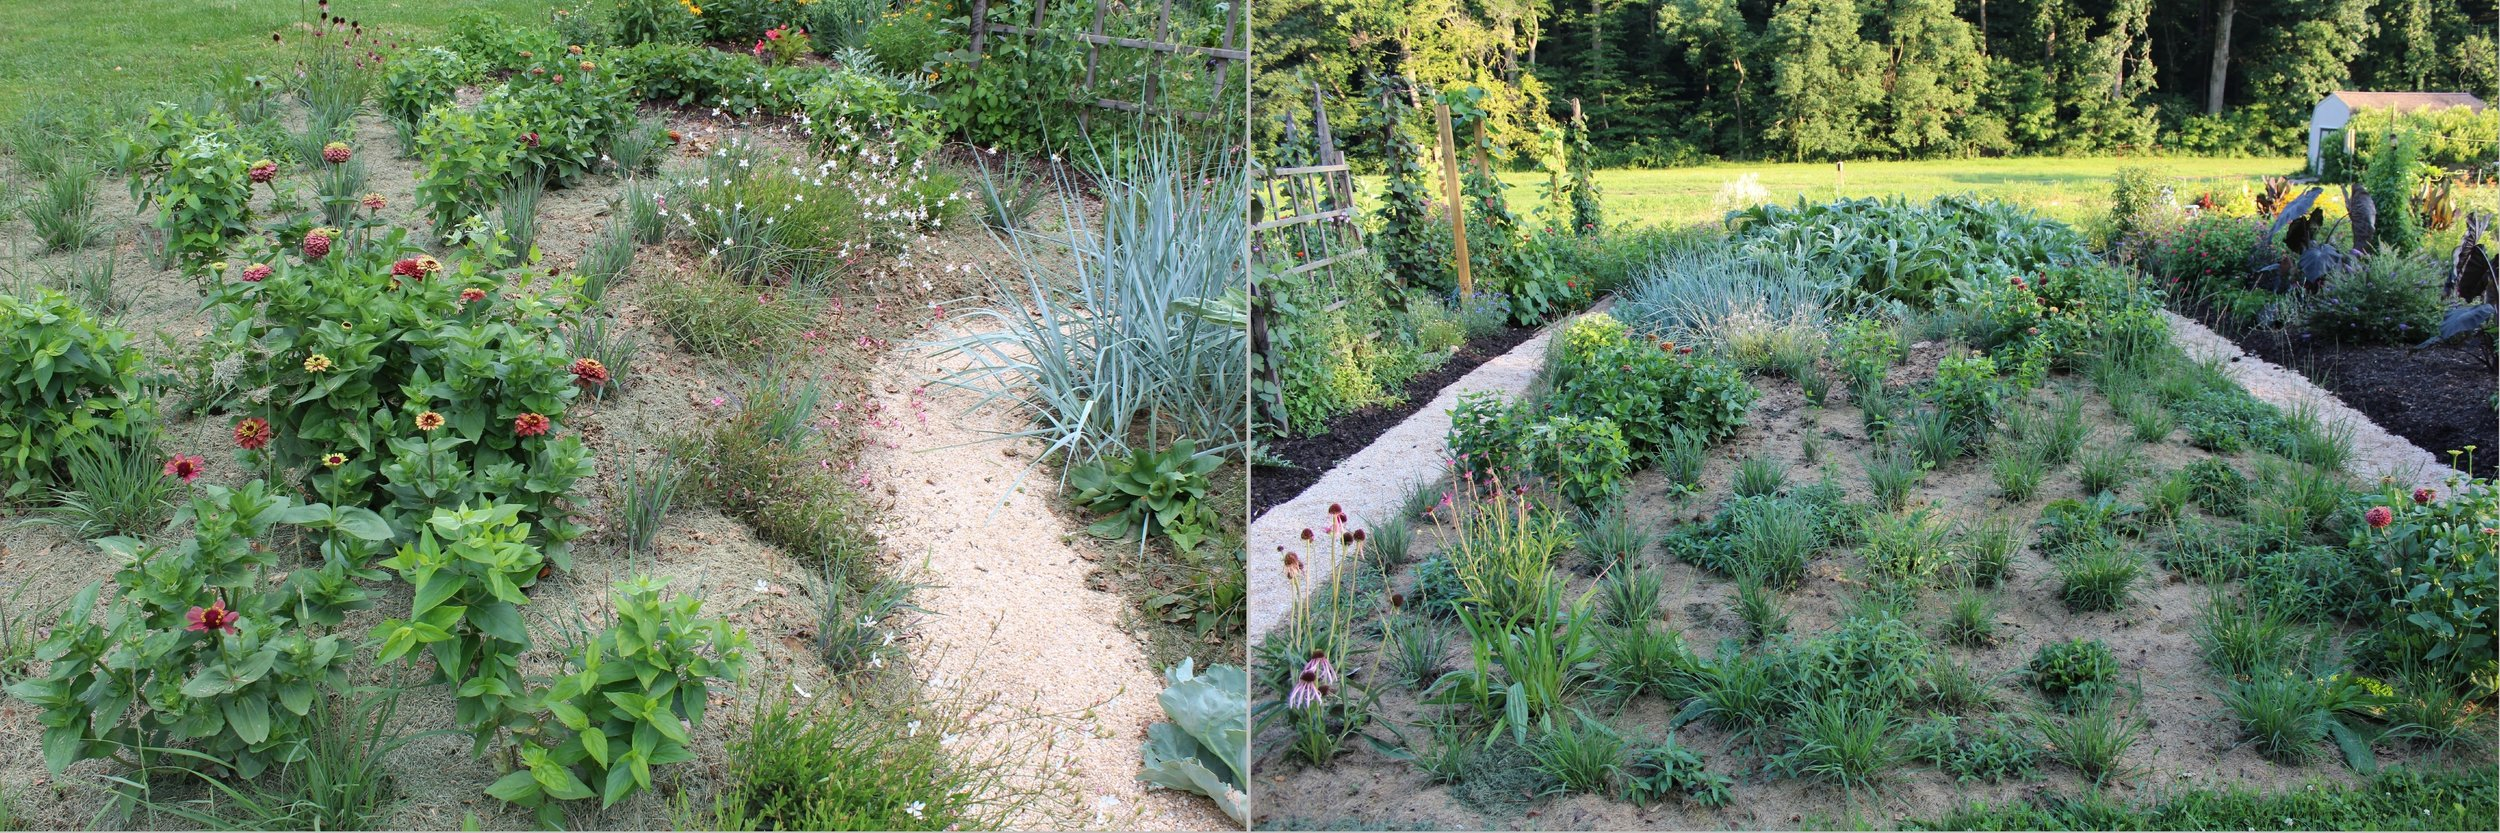 Given ideal conditions and no competition, plants can rapidly grow as if they are racing to take advantage over each other; here in July, Martha's plantings are beginning to fill out.